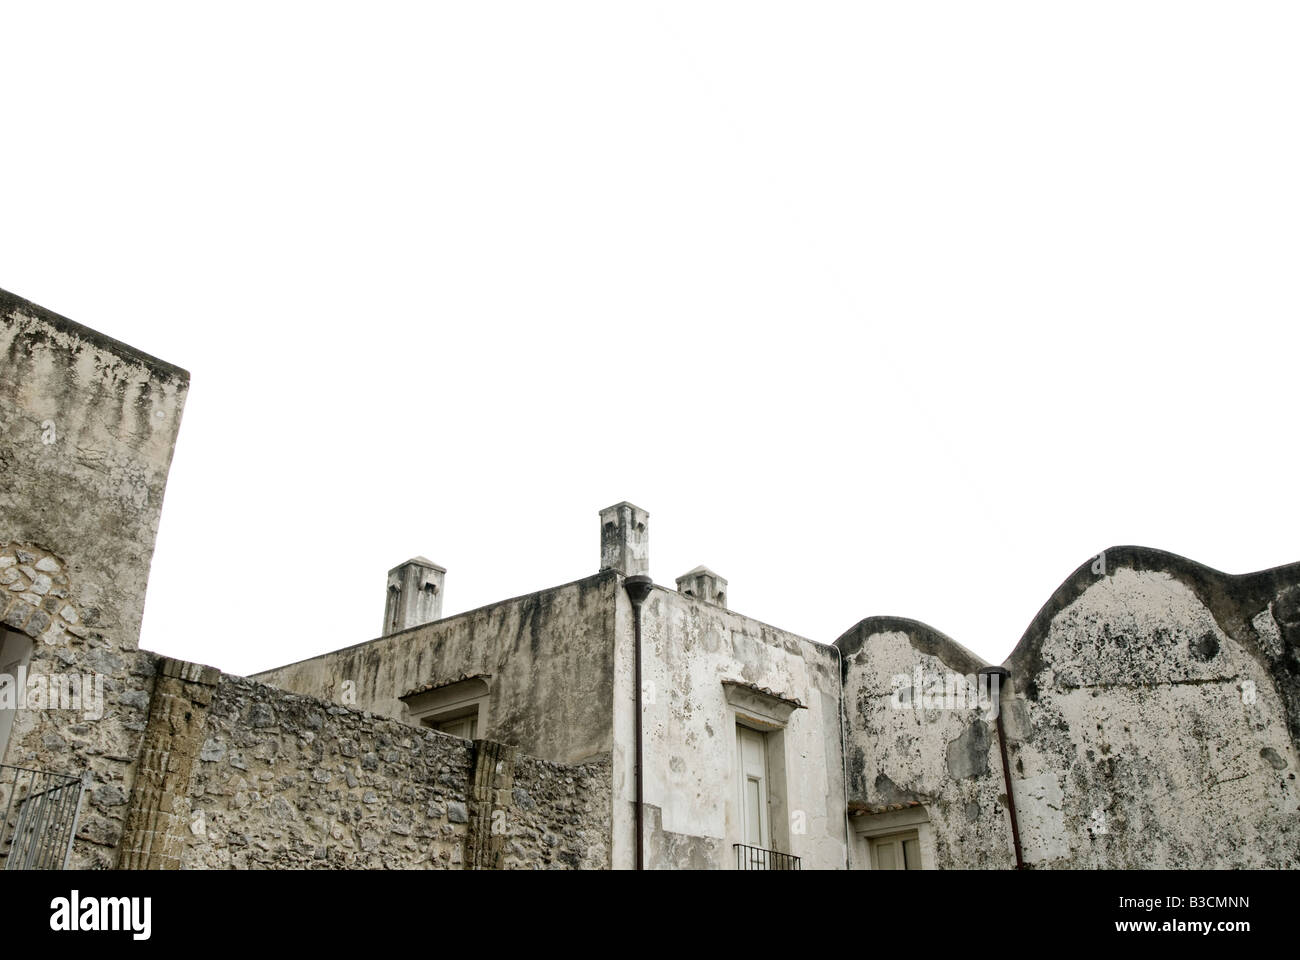 Rooftops on Grey Overcast Day. Ravello,  Italy - Stock Image